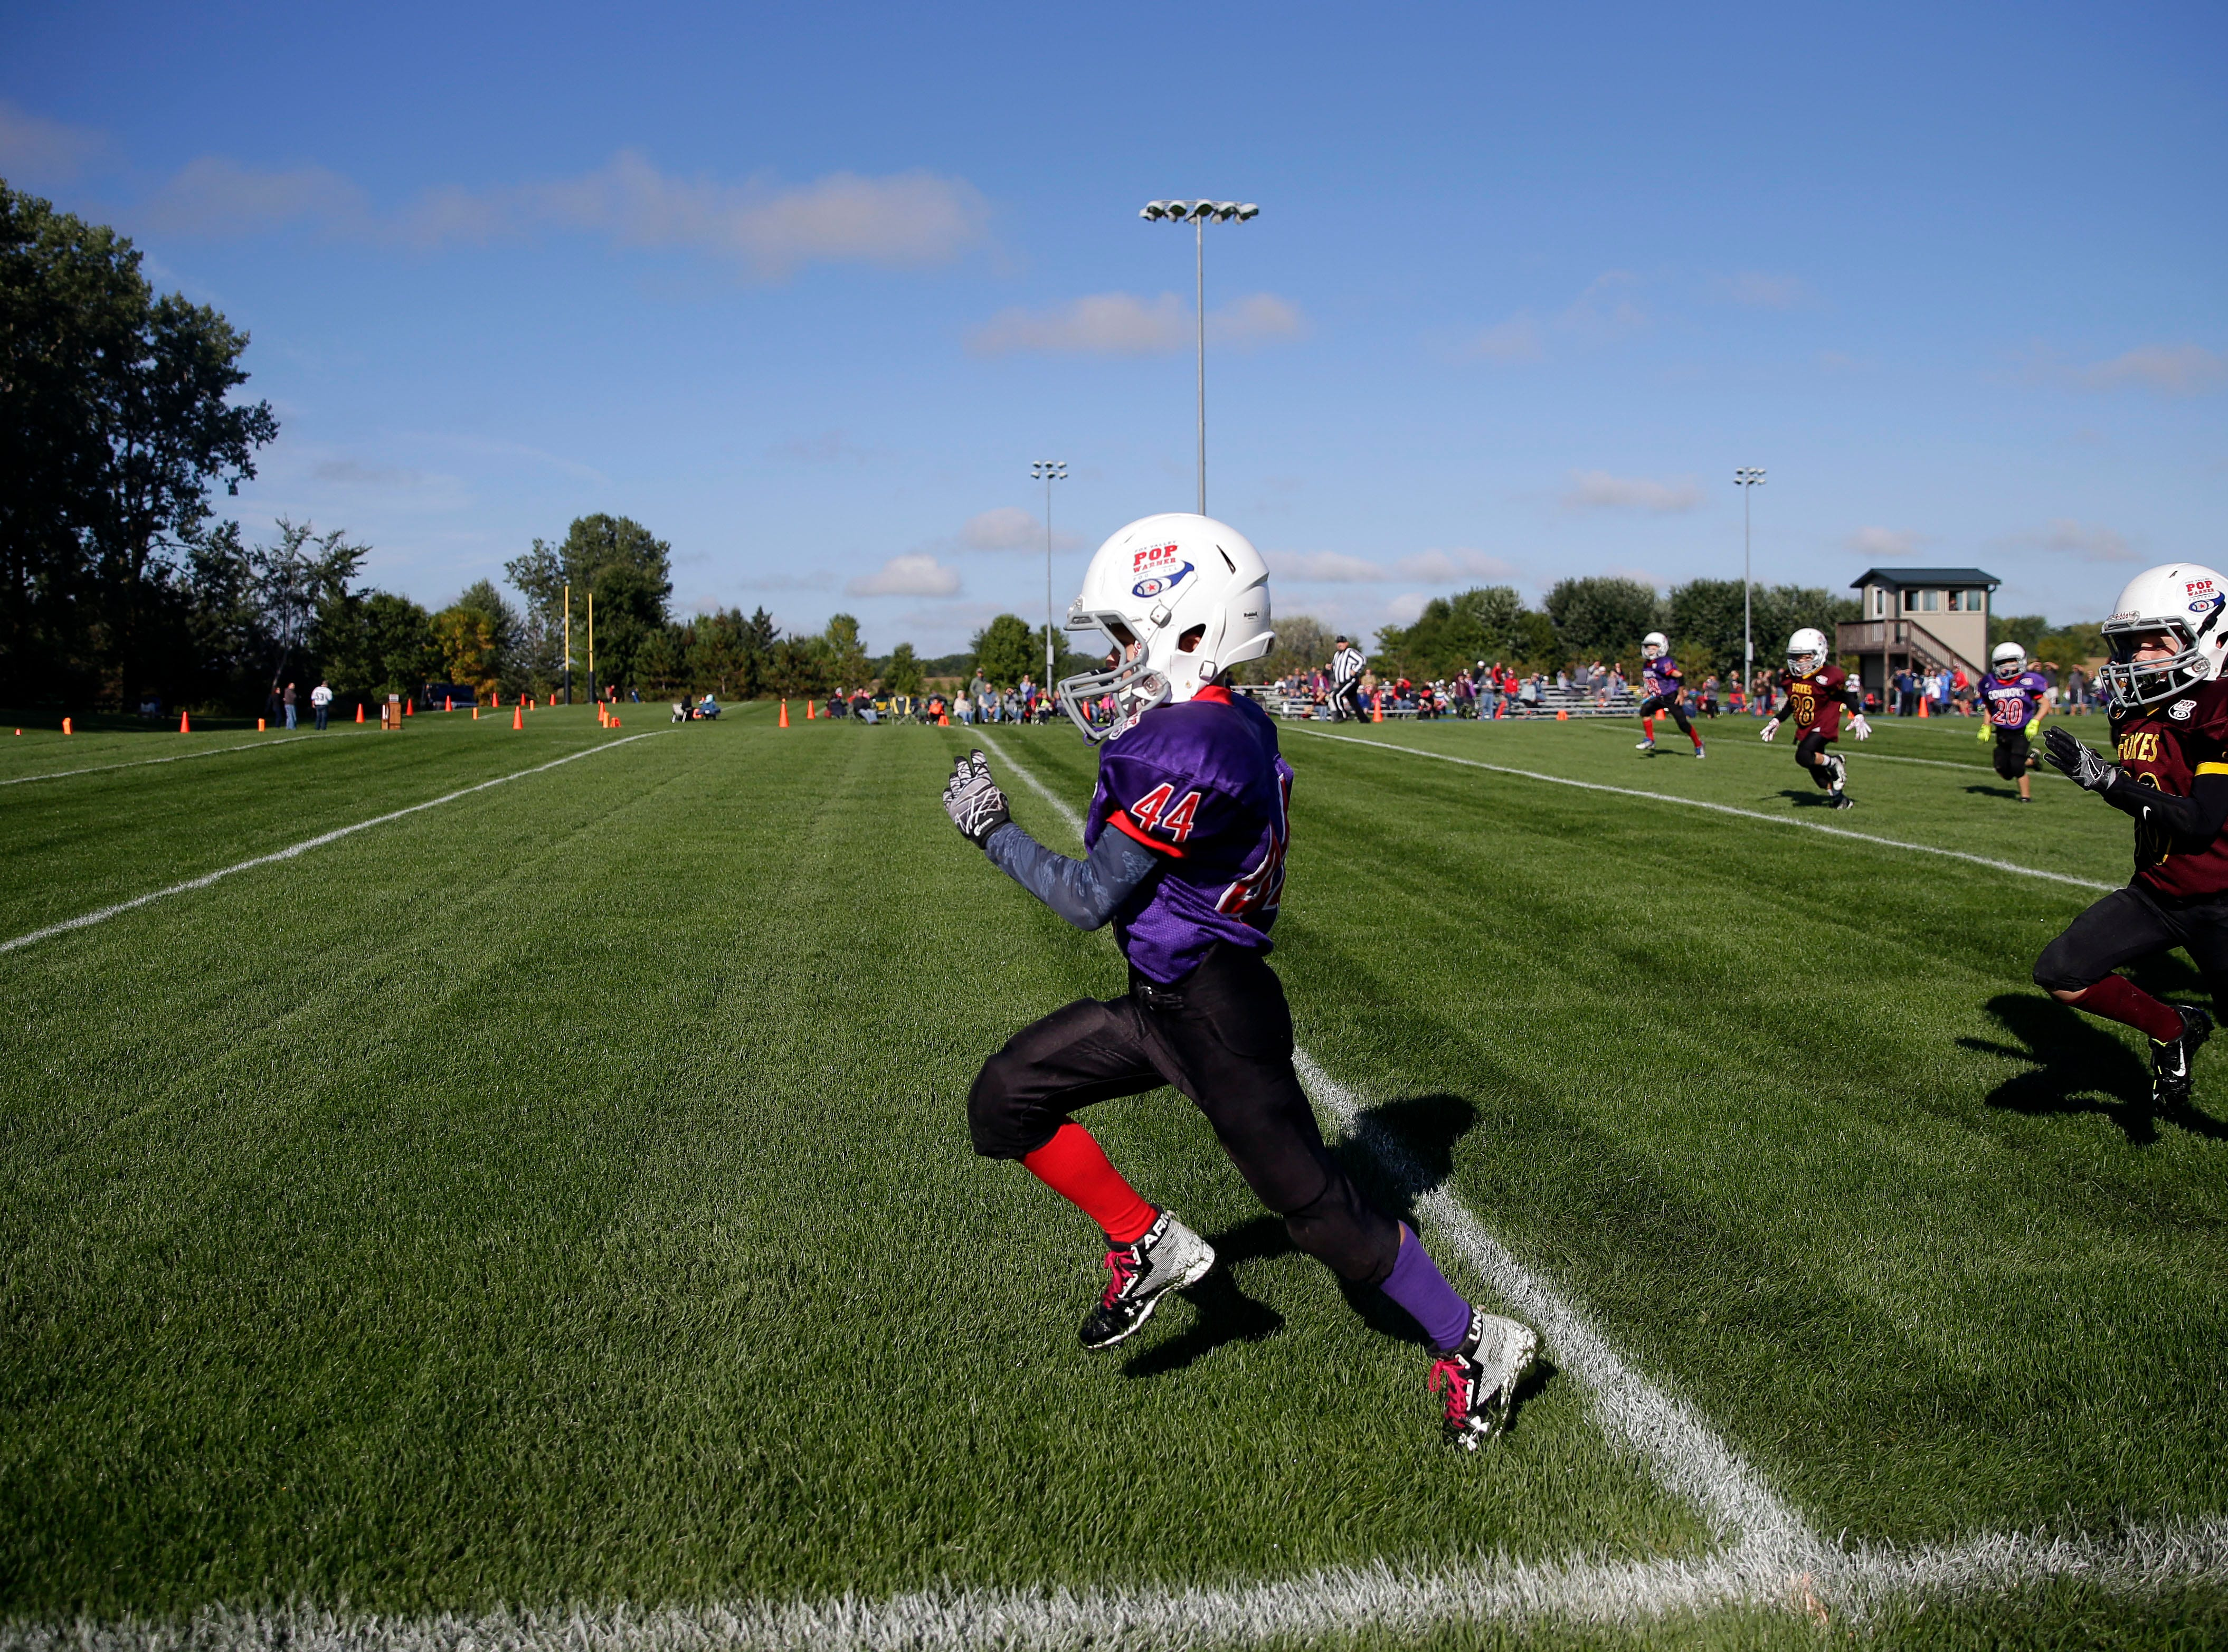 Carson Tylinski of the Cowboys runs for a touchdown that is called back as Fox Valley Pop Warner Football opens the season Saturday, September 8, 2018, at Plamann Park in Grand Chute, Wis.